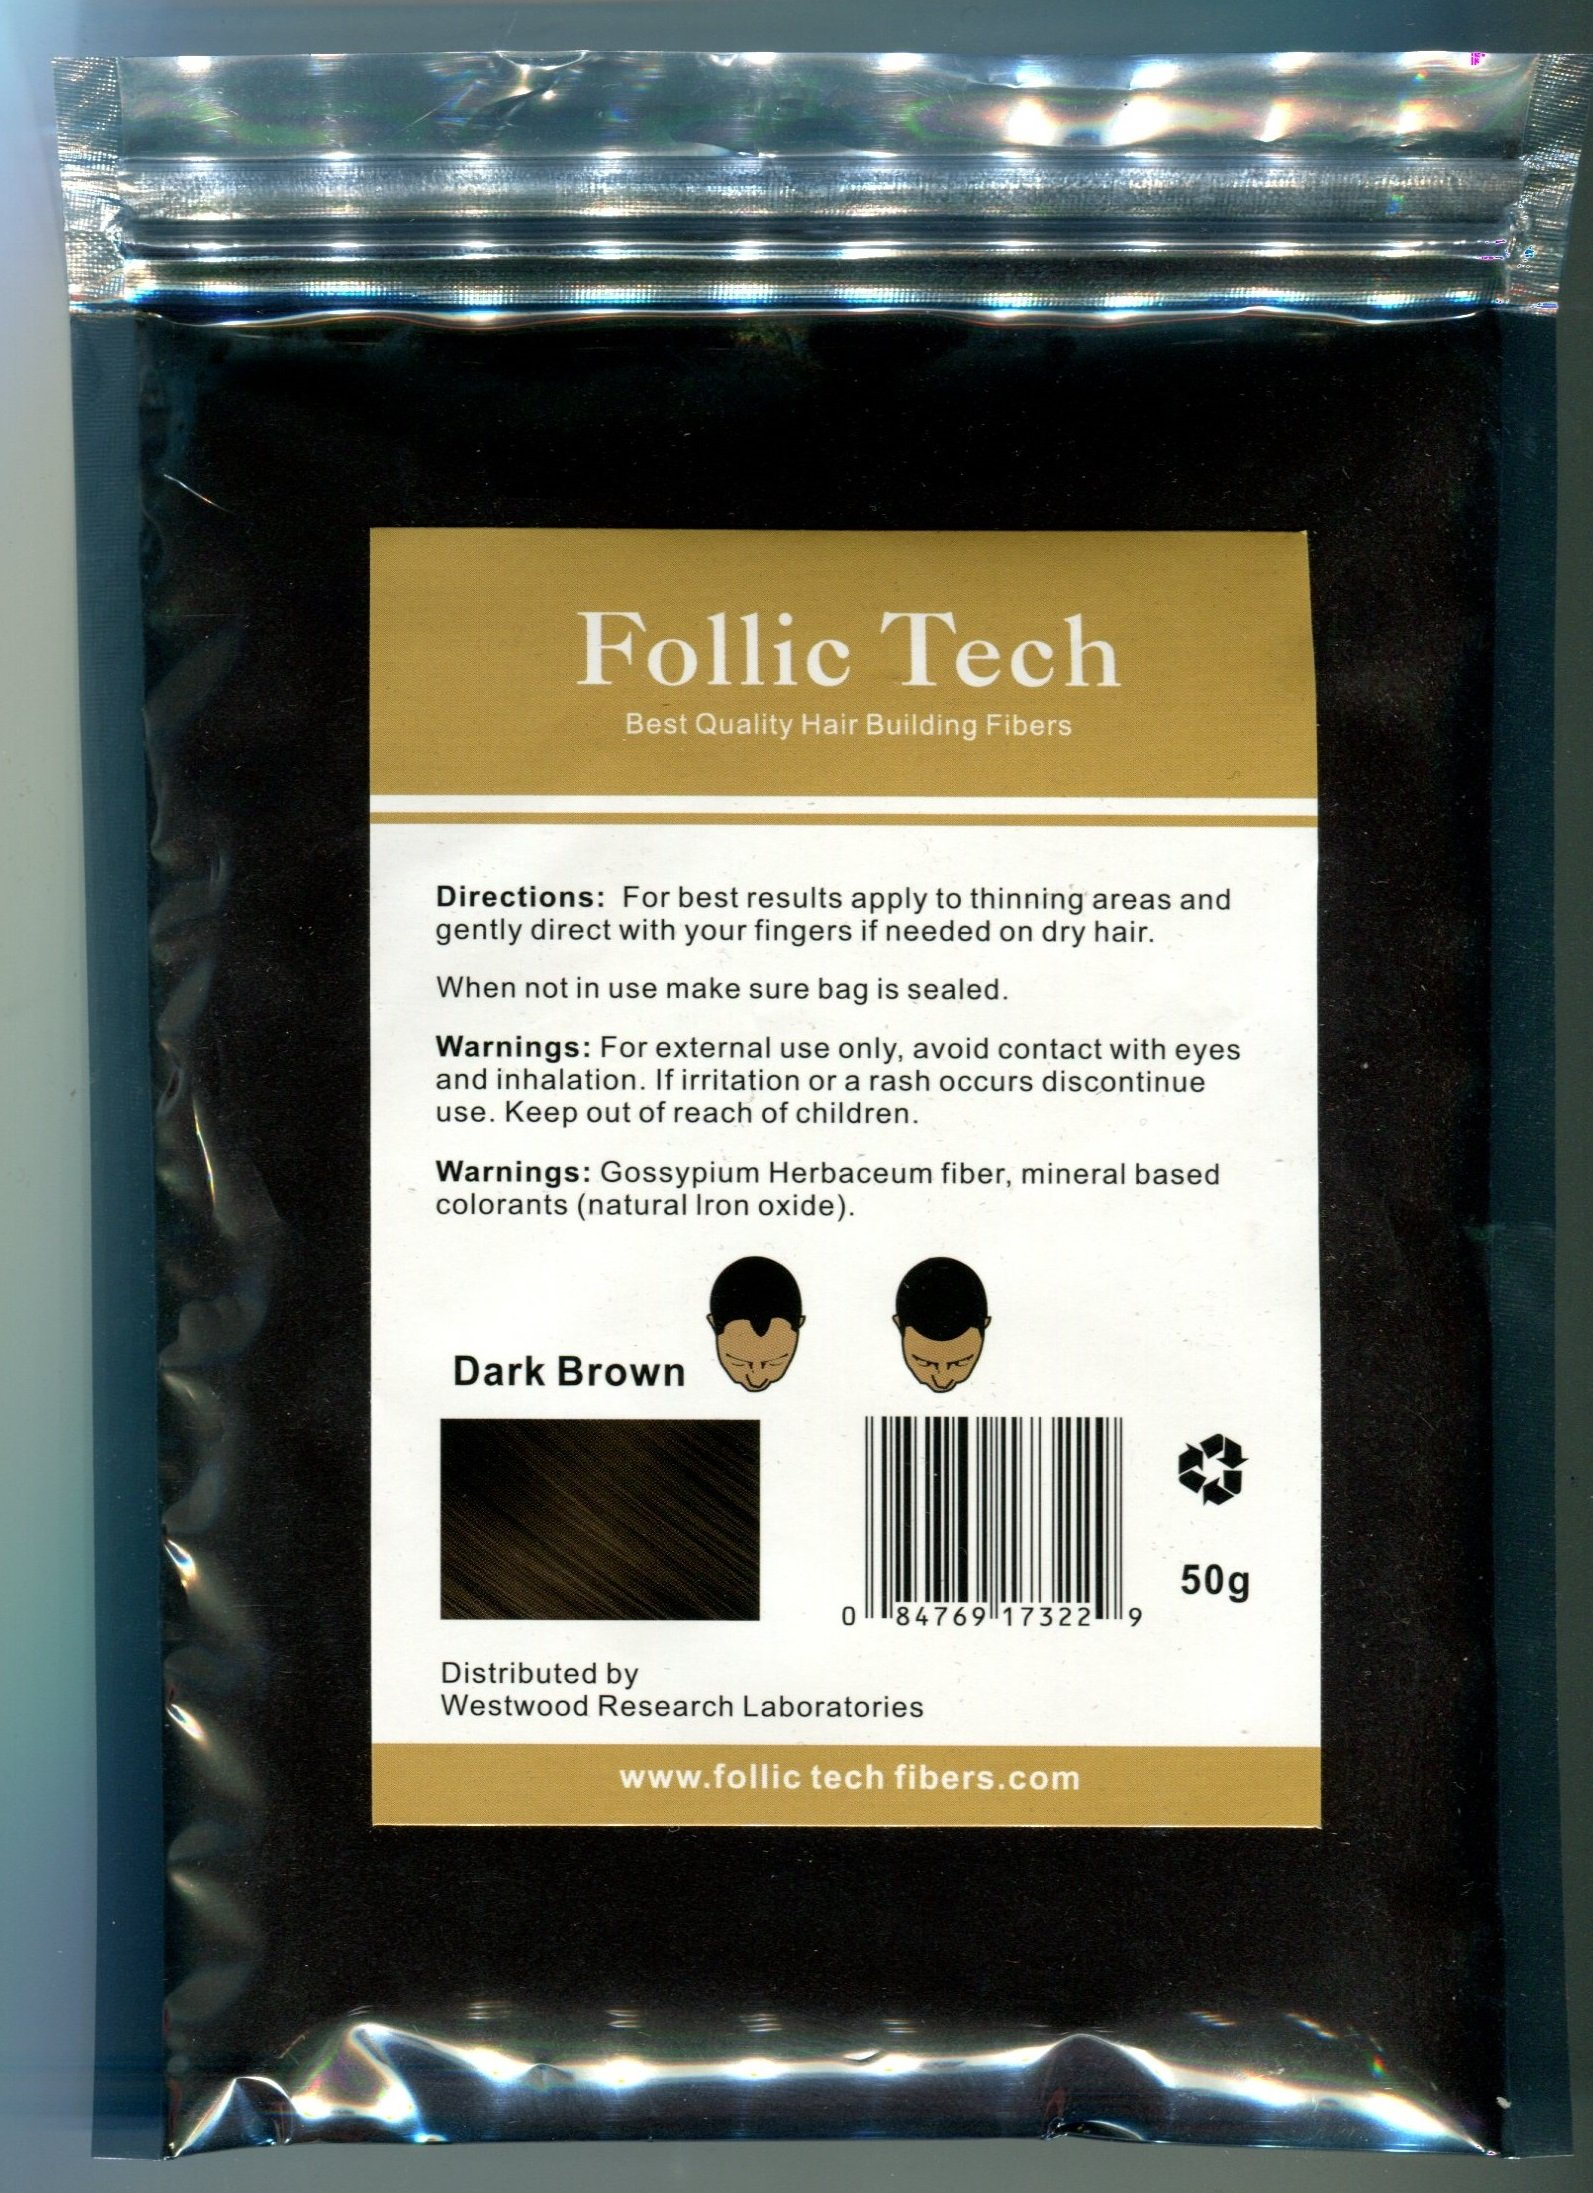 Follic Tech Hair Building Fibers 220 Grams Highest Grade Refill Can Use for Your Bottles from Competitors Like Toppik, Xfusion, Miracle Hair Made In US not China (Medium Brown) by Follic Tech